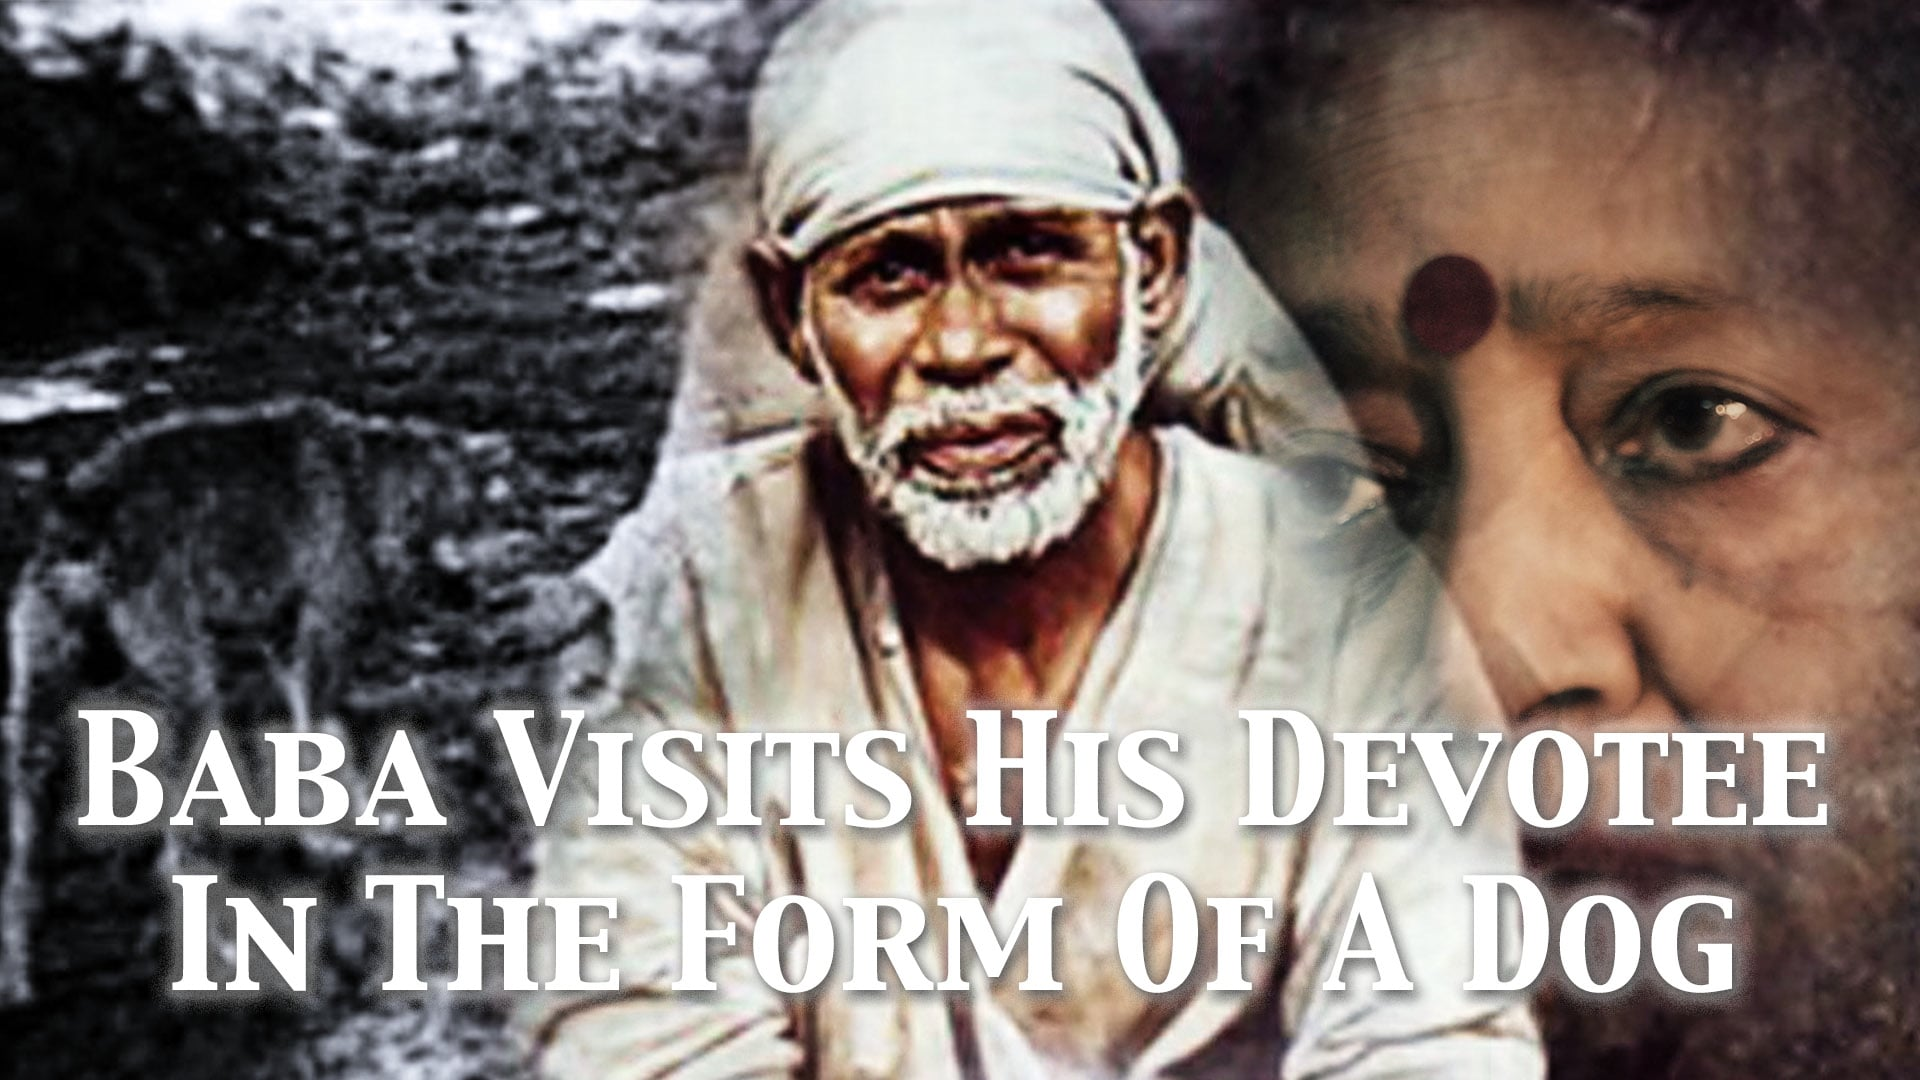 Baba visits His Devotee in the Form of a Dog